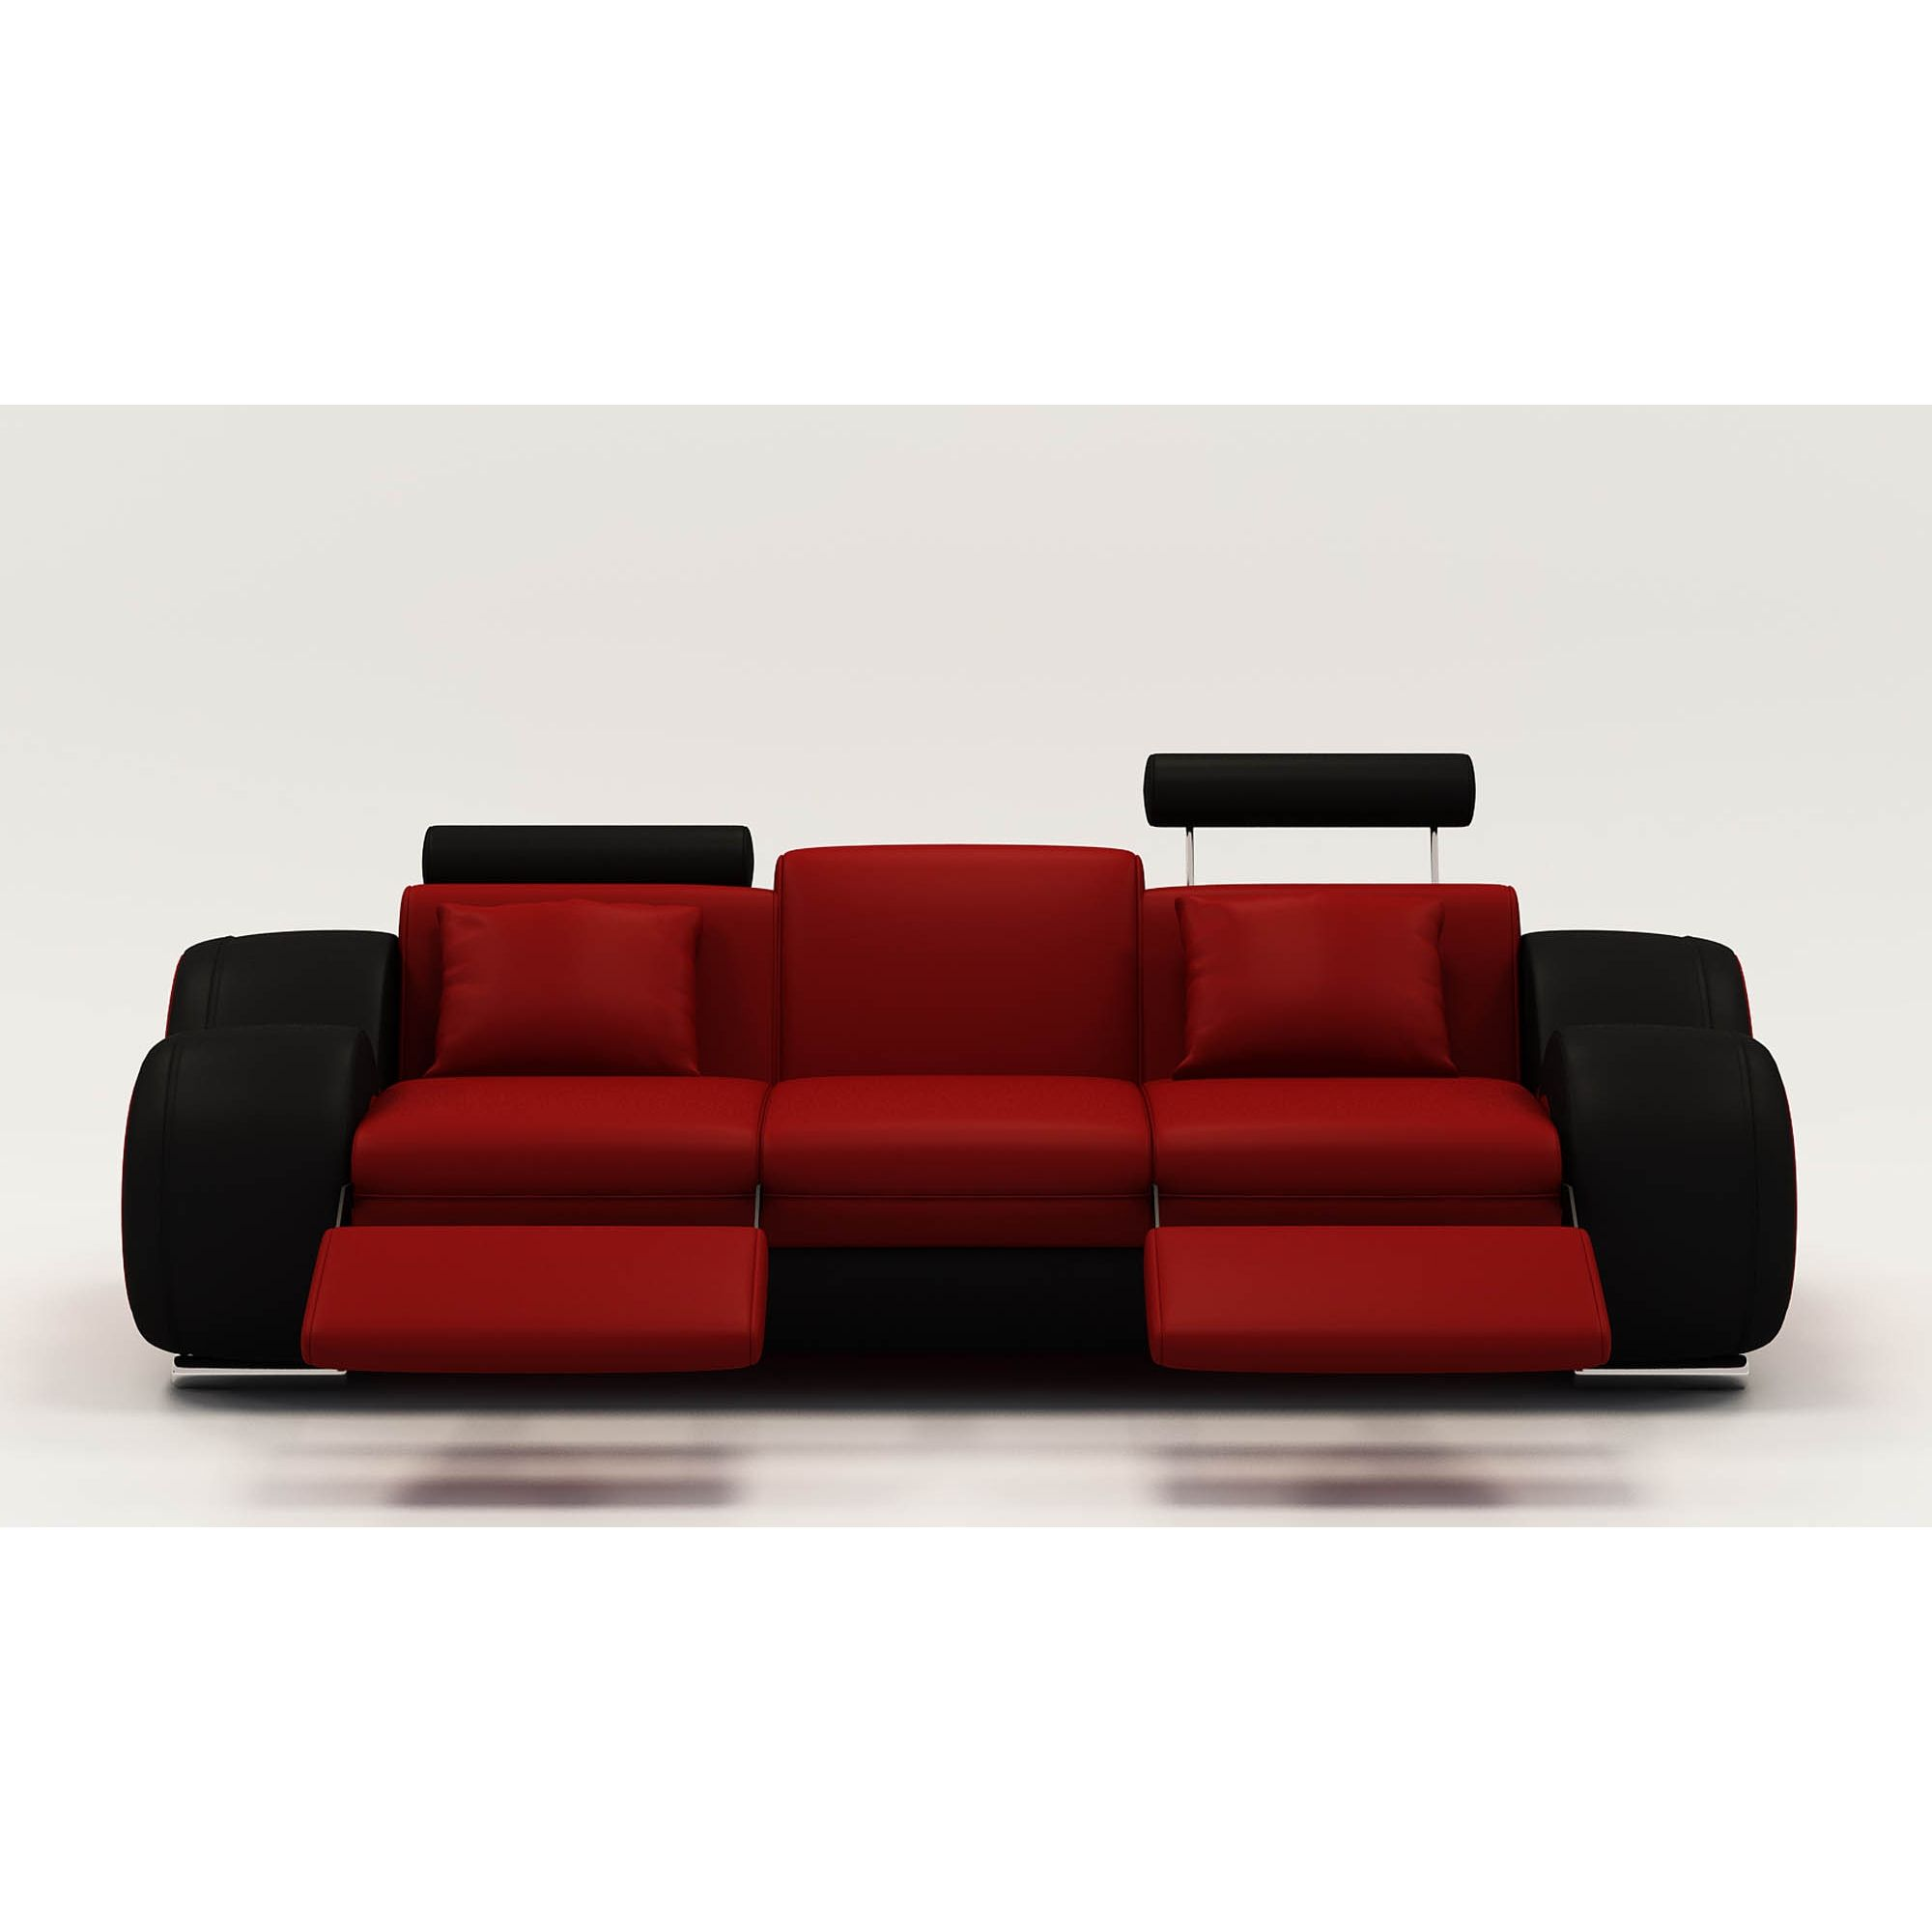 Deco in paris 7 canape design 3 places cuir rouge et noir tetieres relax os - Canape relax cuir 3 places ...